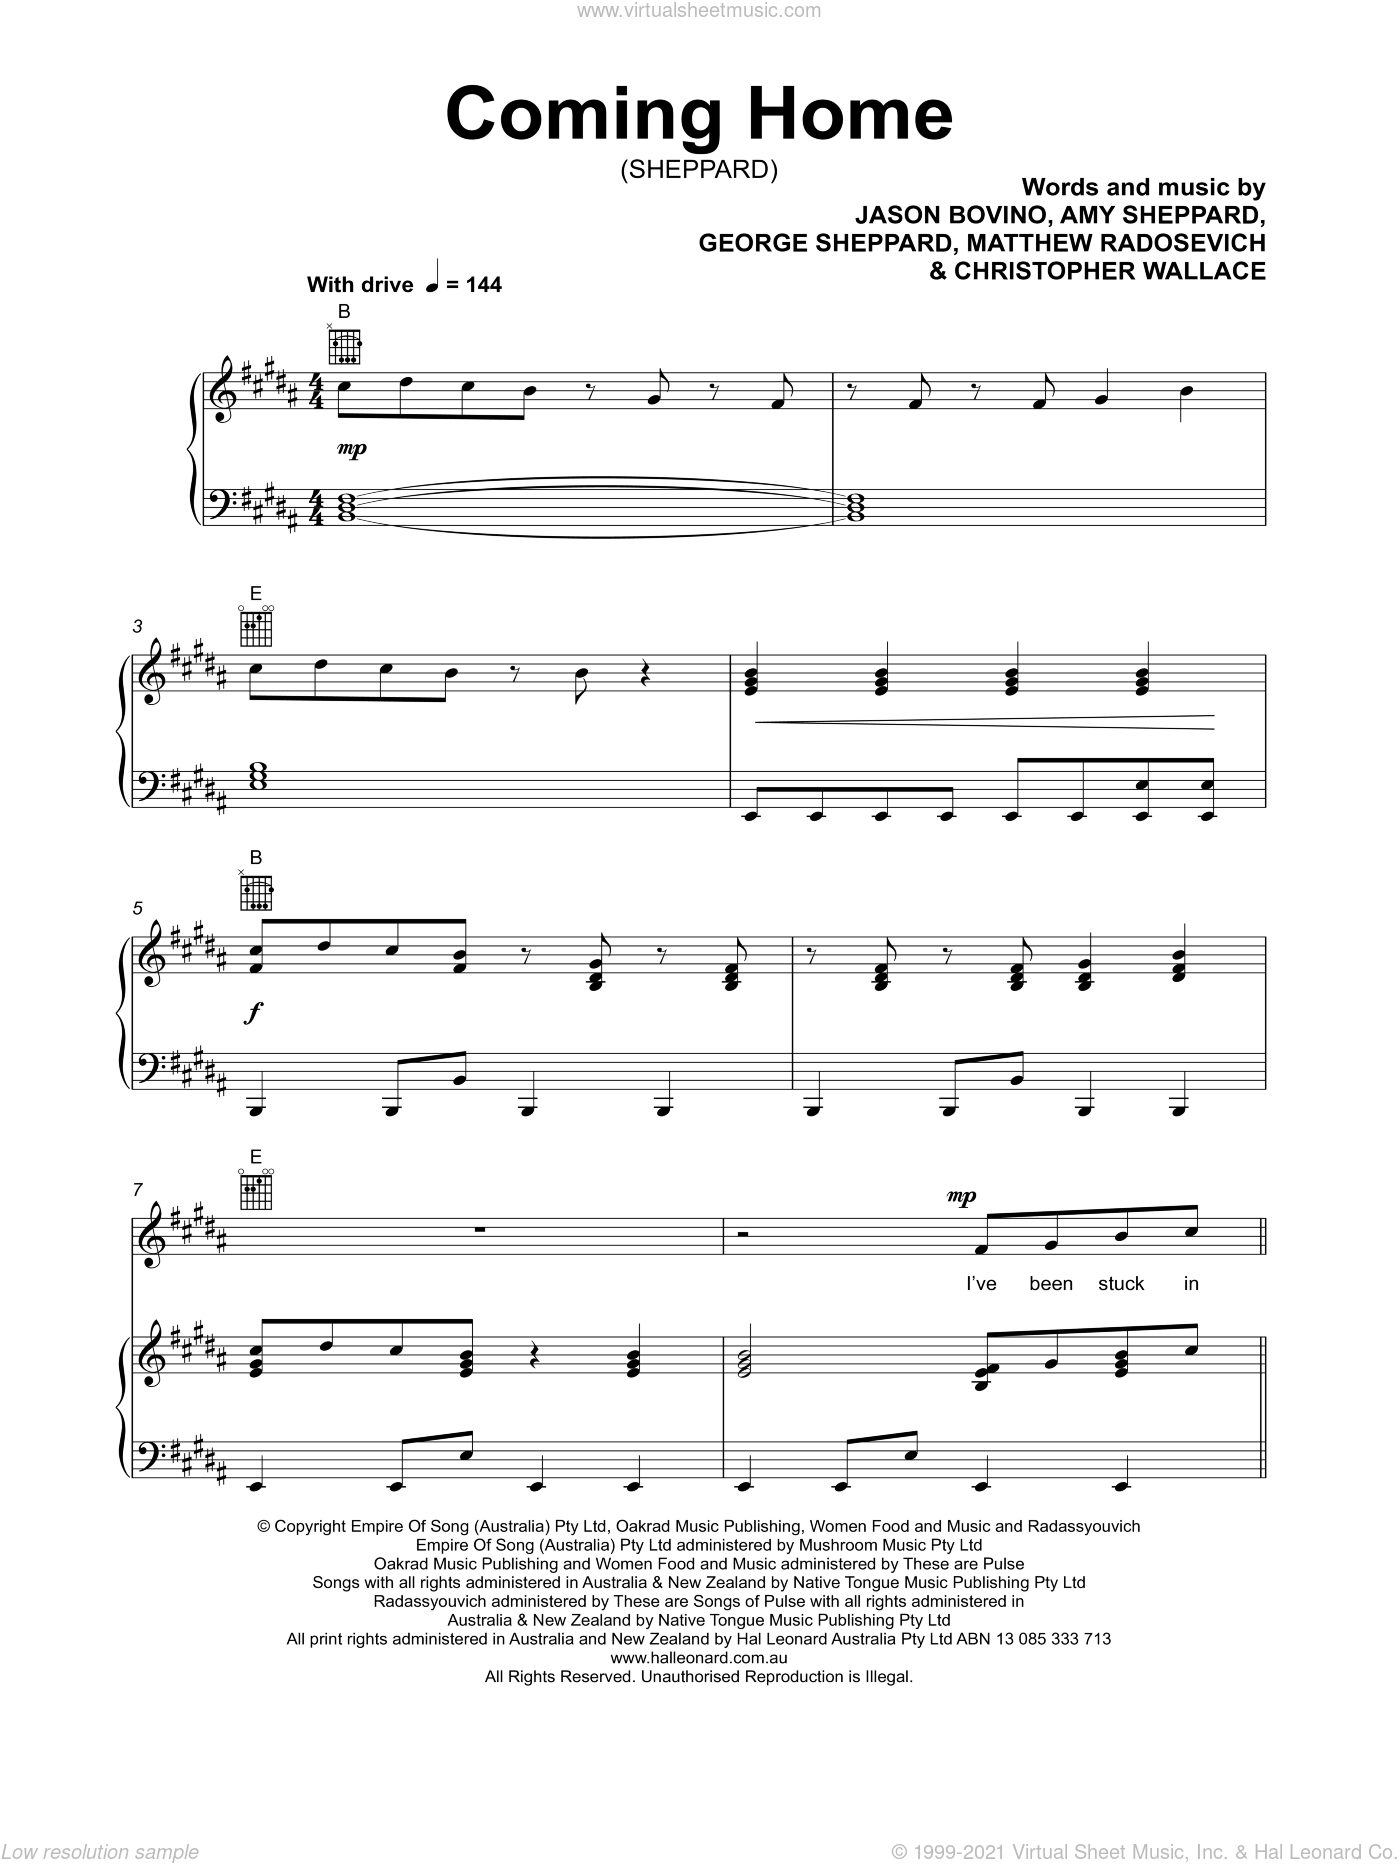 Coming Home sheet music for voice, piano or guitar by Sheppard, Amy Sheppard, Christopher Wallace, George Sheppard, Jason Bovino and Matthew Radosevich, intermediate skill level